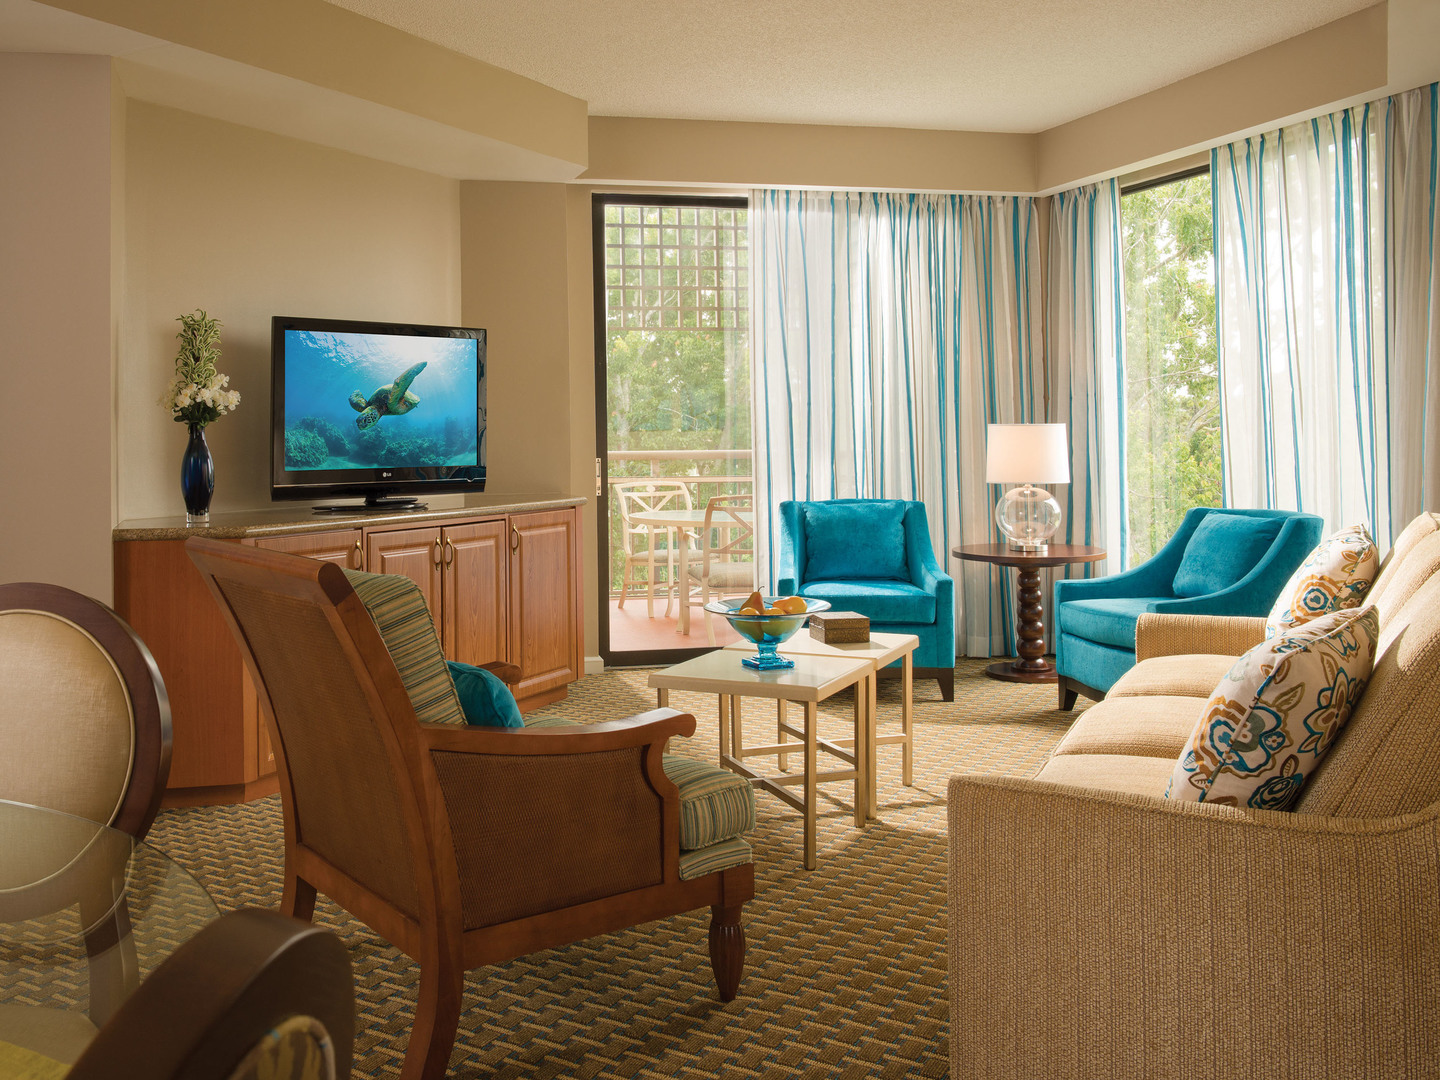 Marriott's Royal Palms Villa Living Room. Marriott's Royal Palms is located in Orlando, Florida United States.